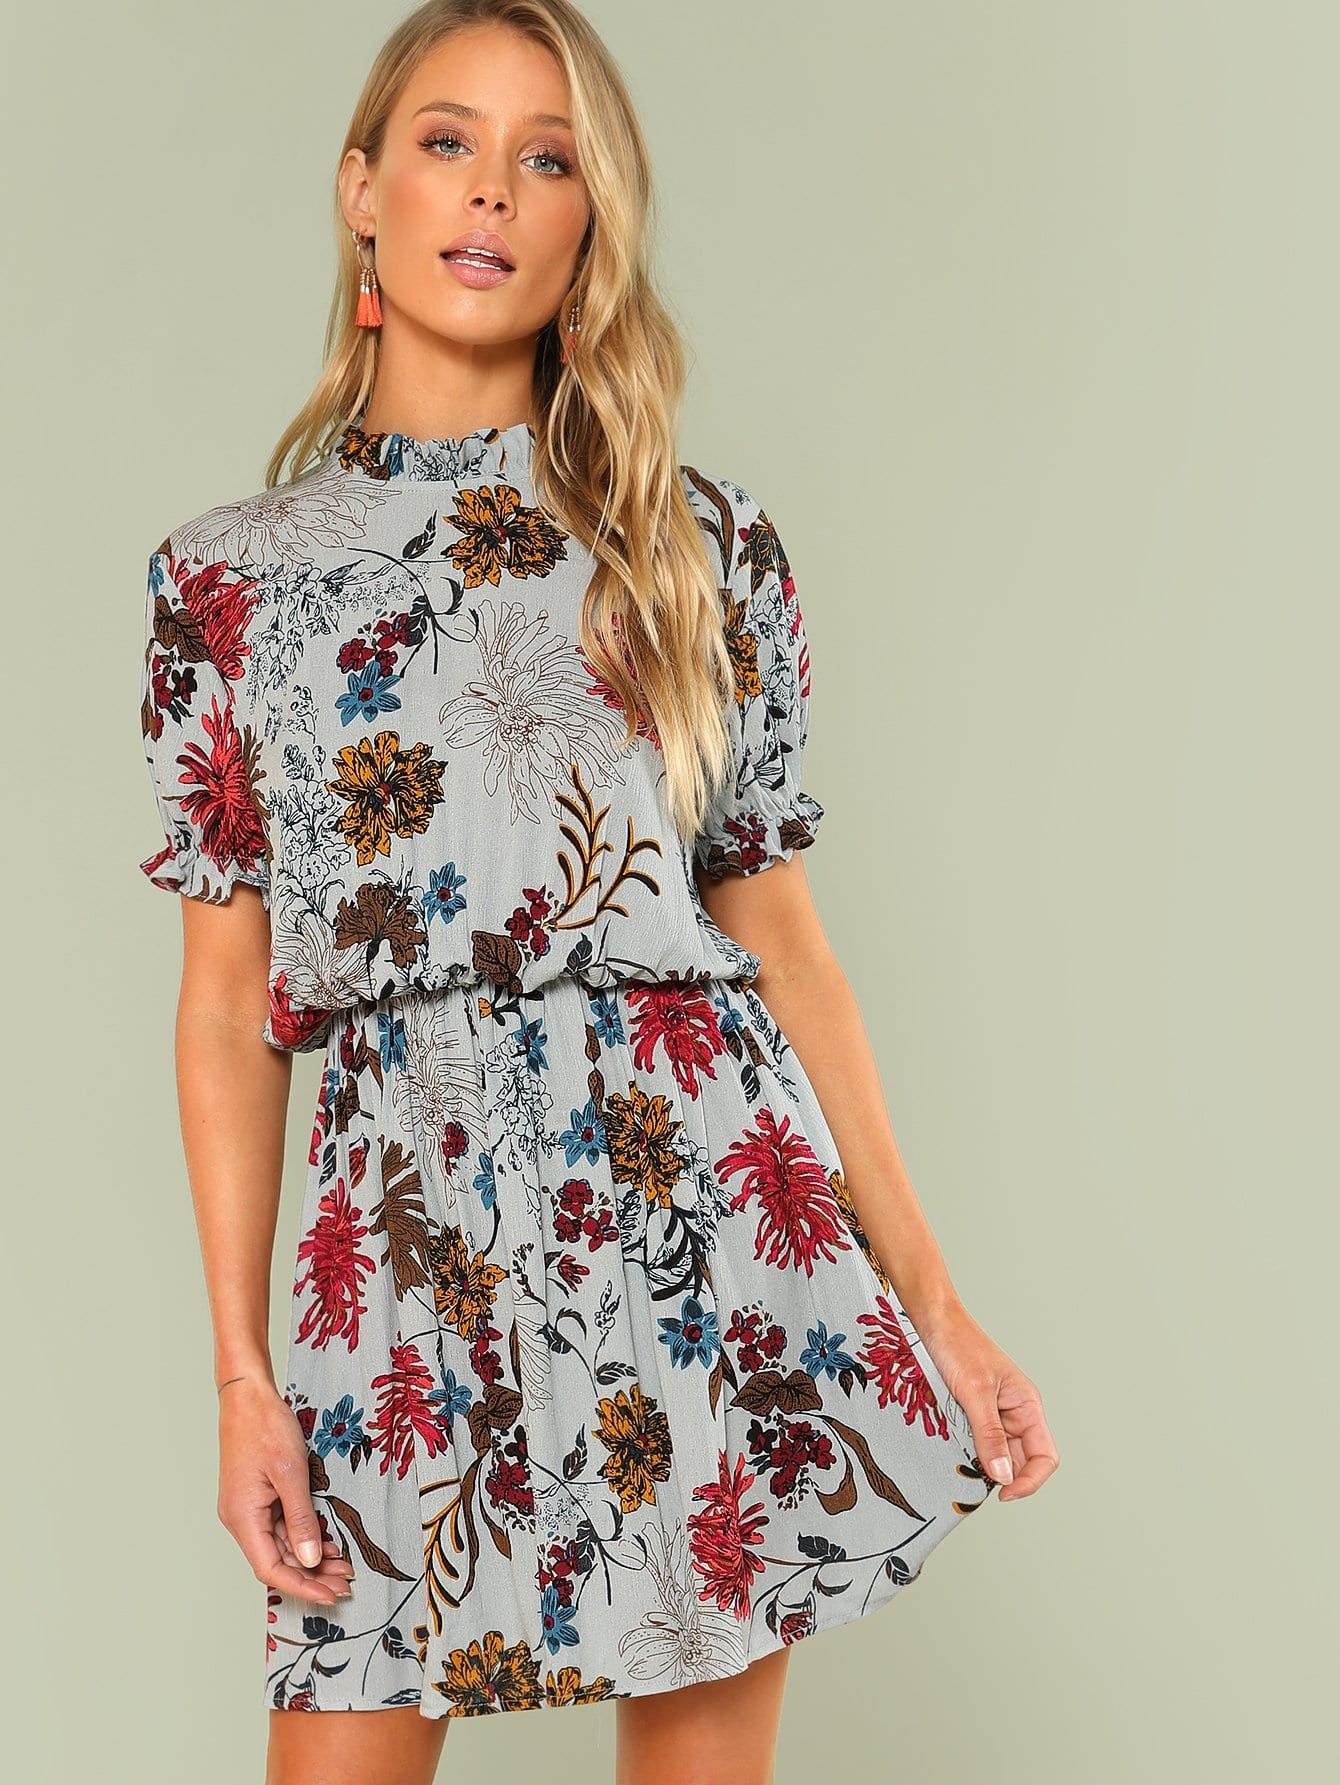 Ruffle Cuff Mock Neck Floral Dress mock neck floral lace long sleeve dress